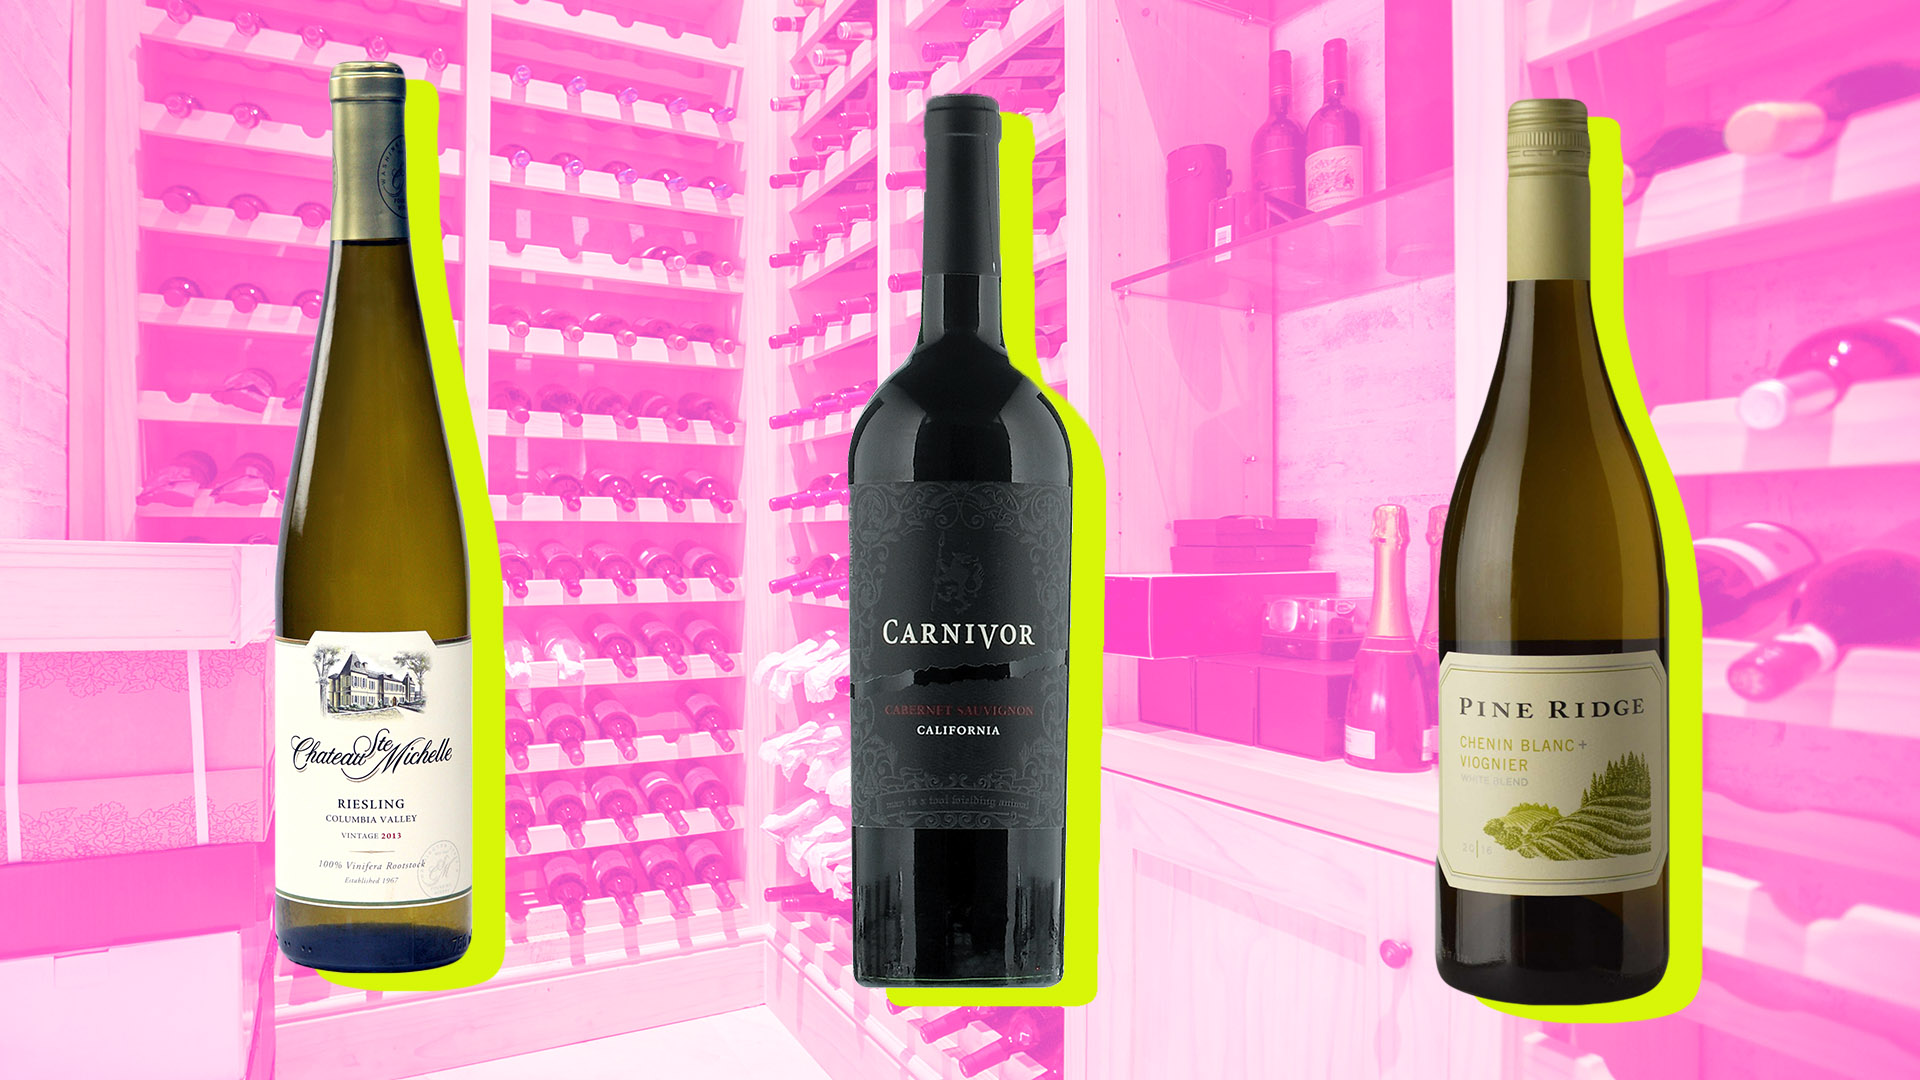 $10 Wines that Taste Way More Expensive Than They Are